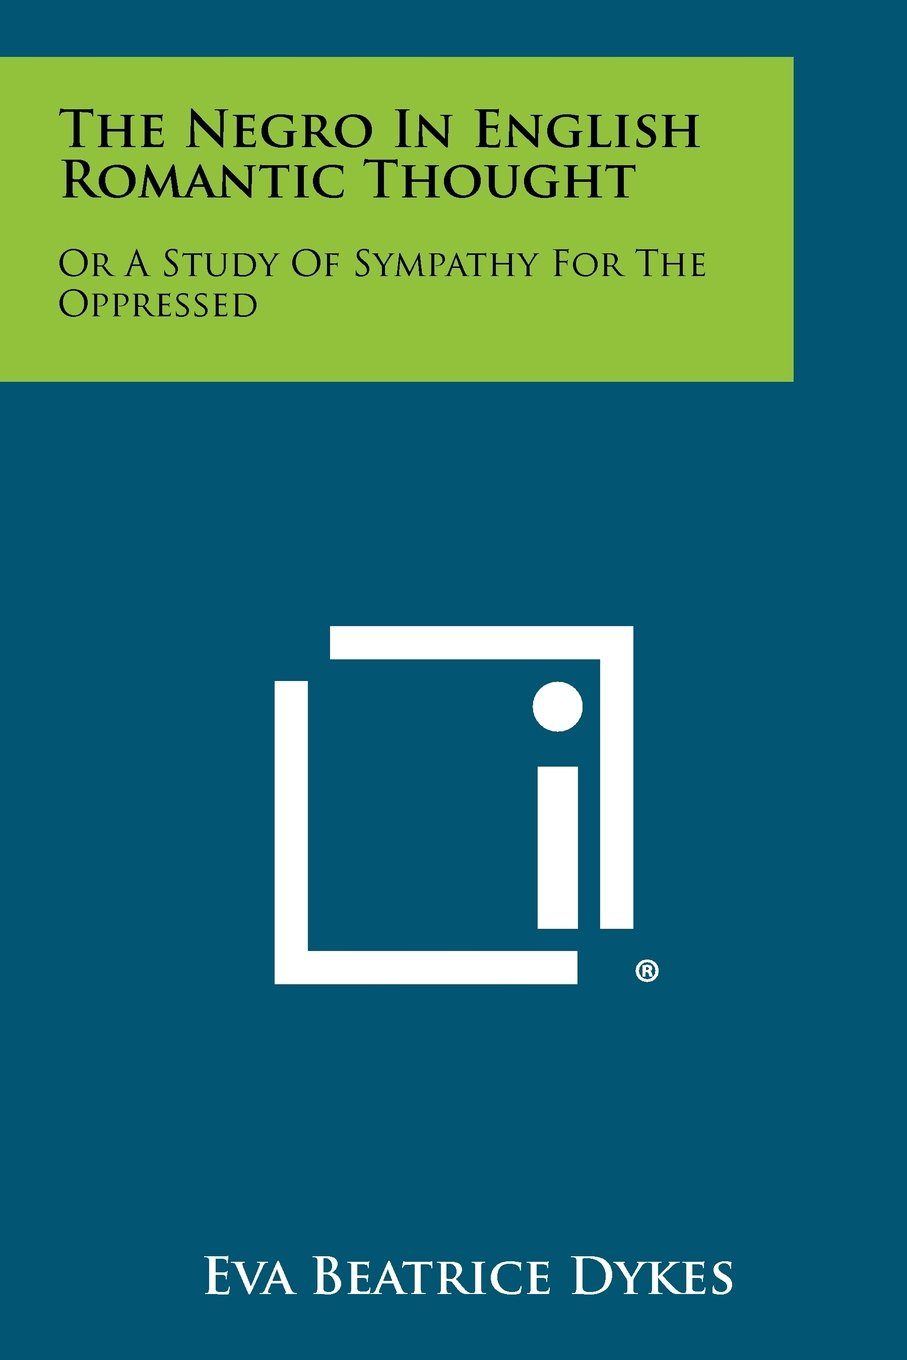 The Negro In English Romantic Thought: Or A Study Of Sympathy For The Oppressed ebook